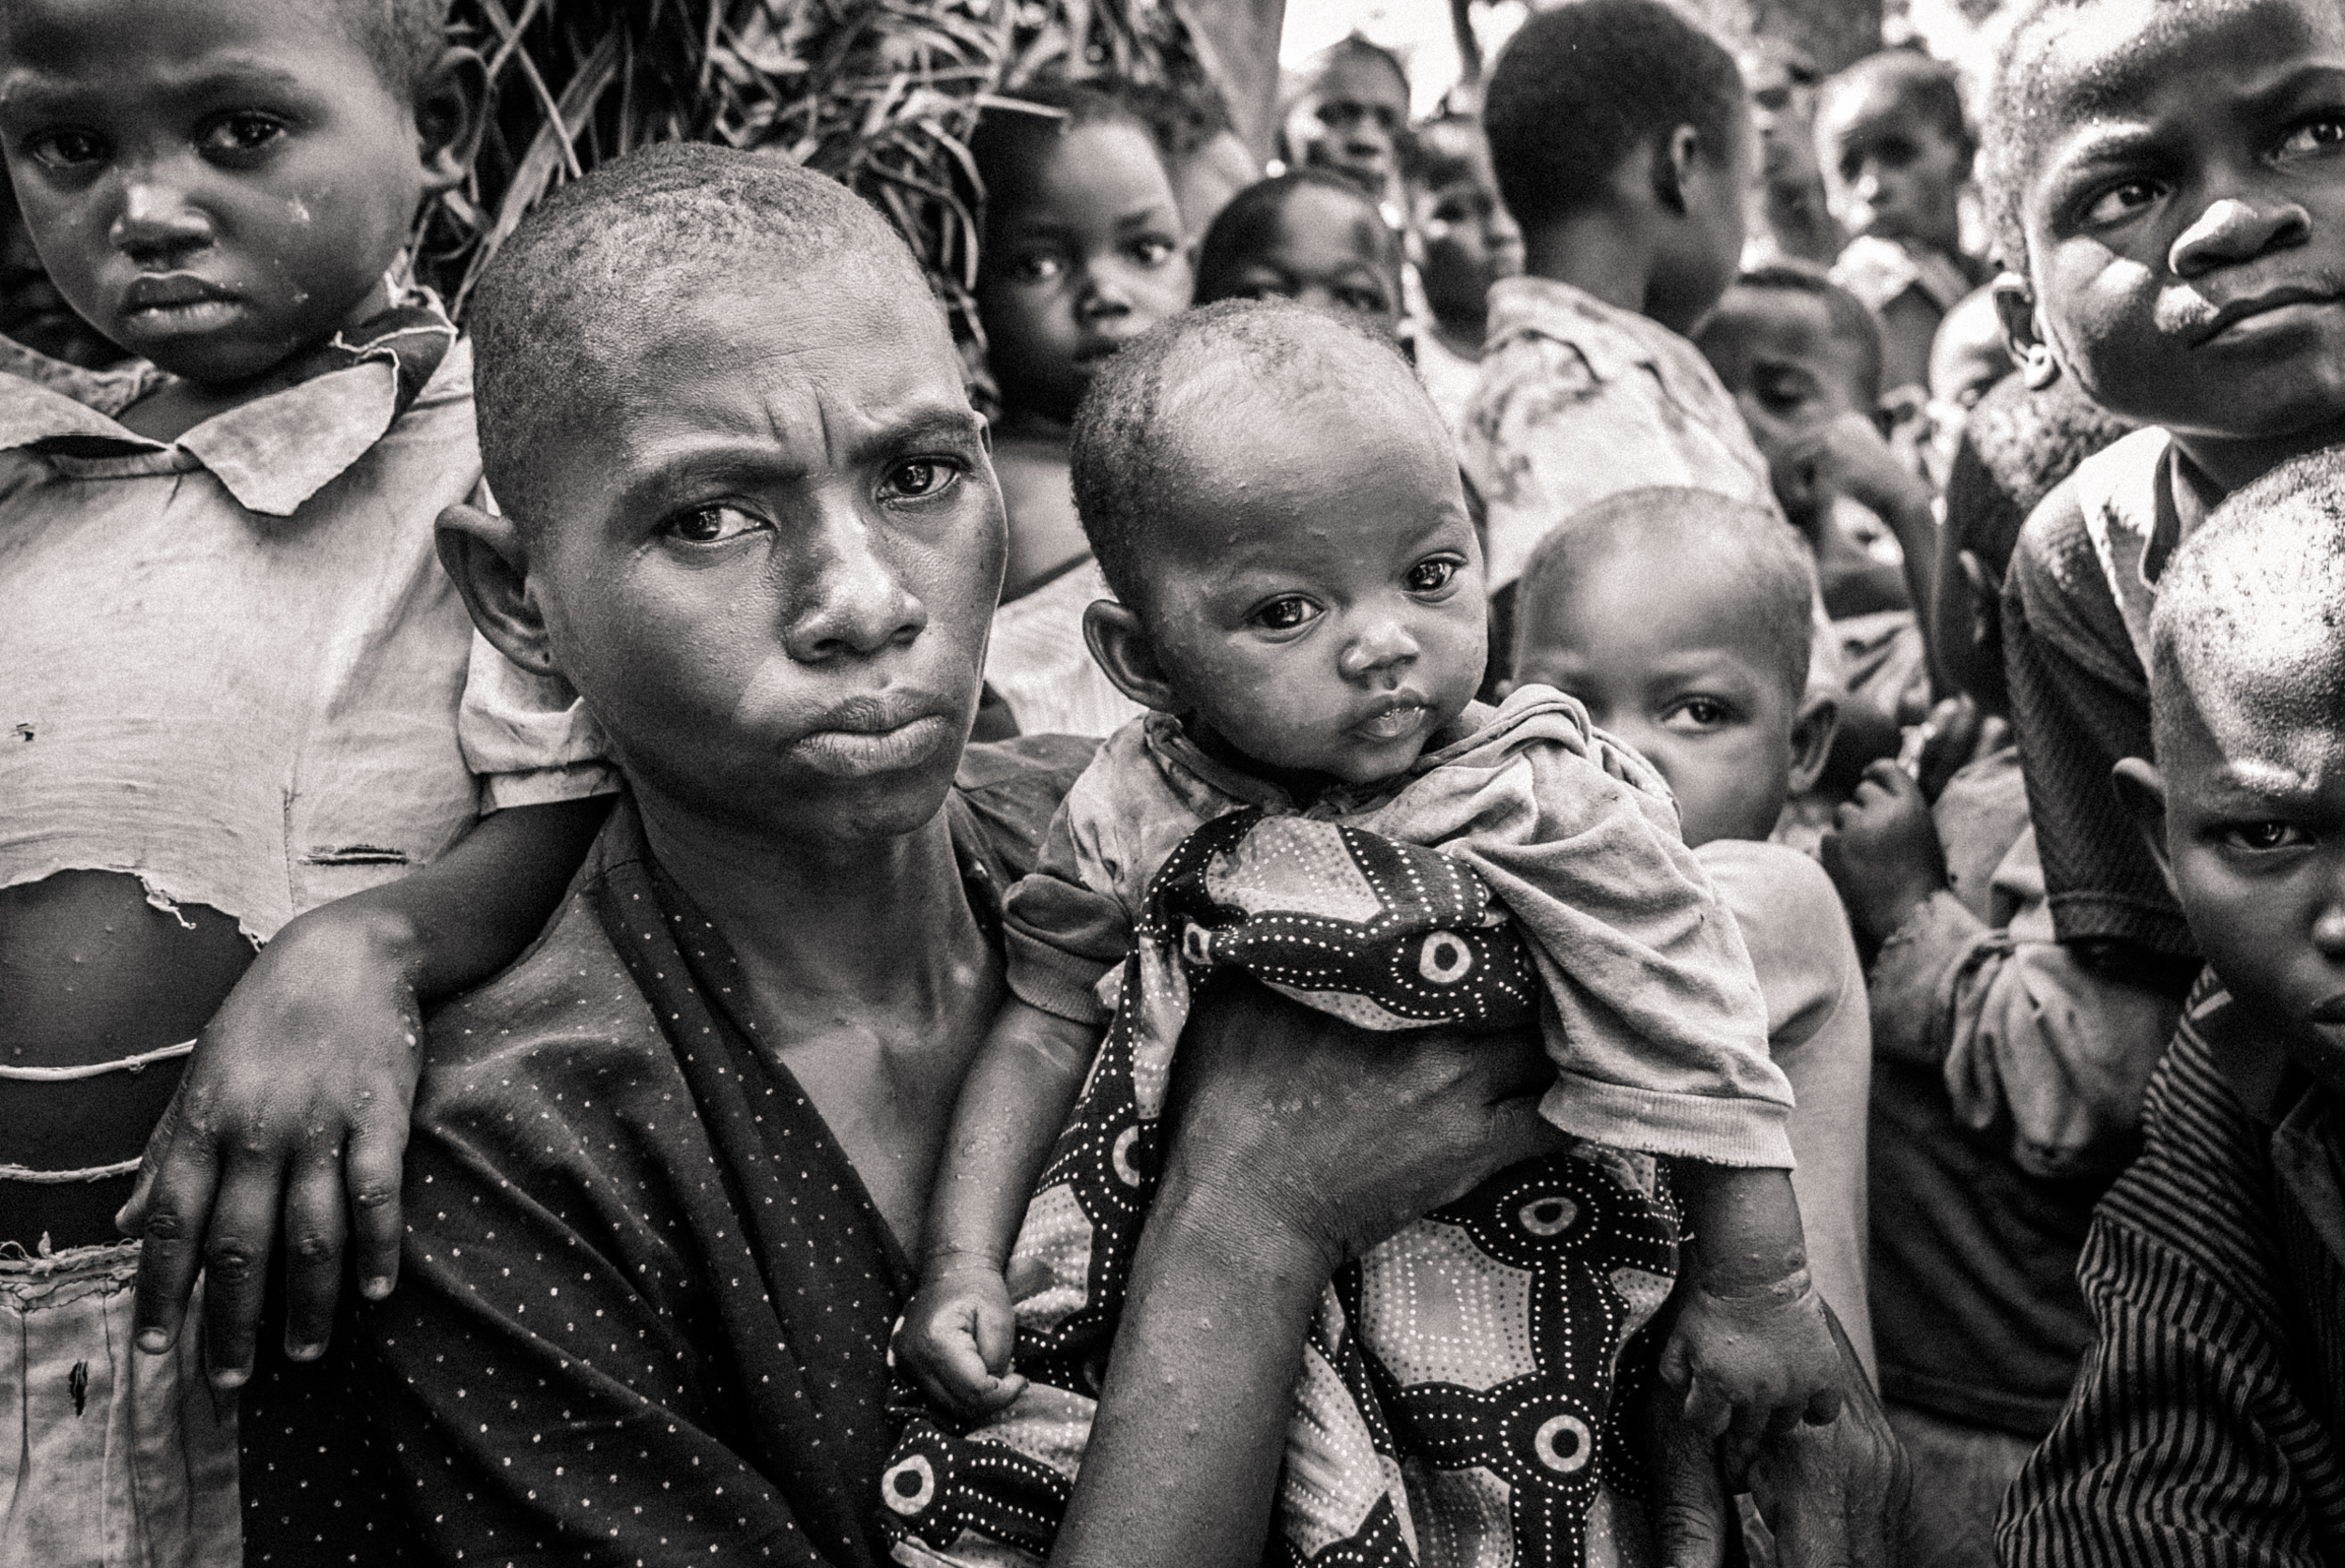 Cursed wealth - Another innocent community caught in the crossfire as factions skirmish to gain control over Congo's vast mineral wealth.